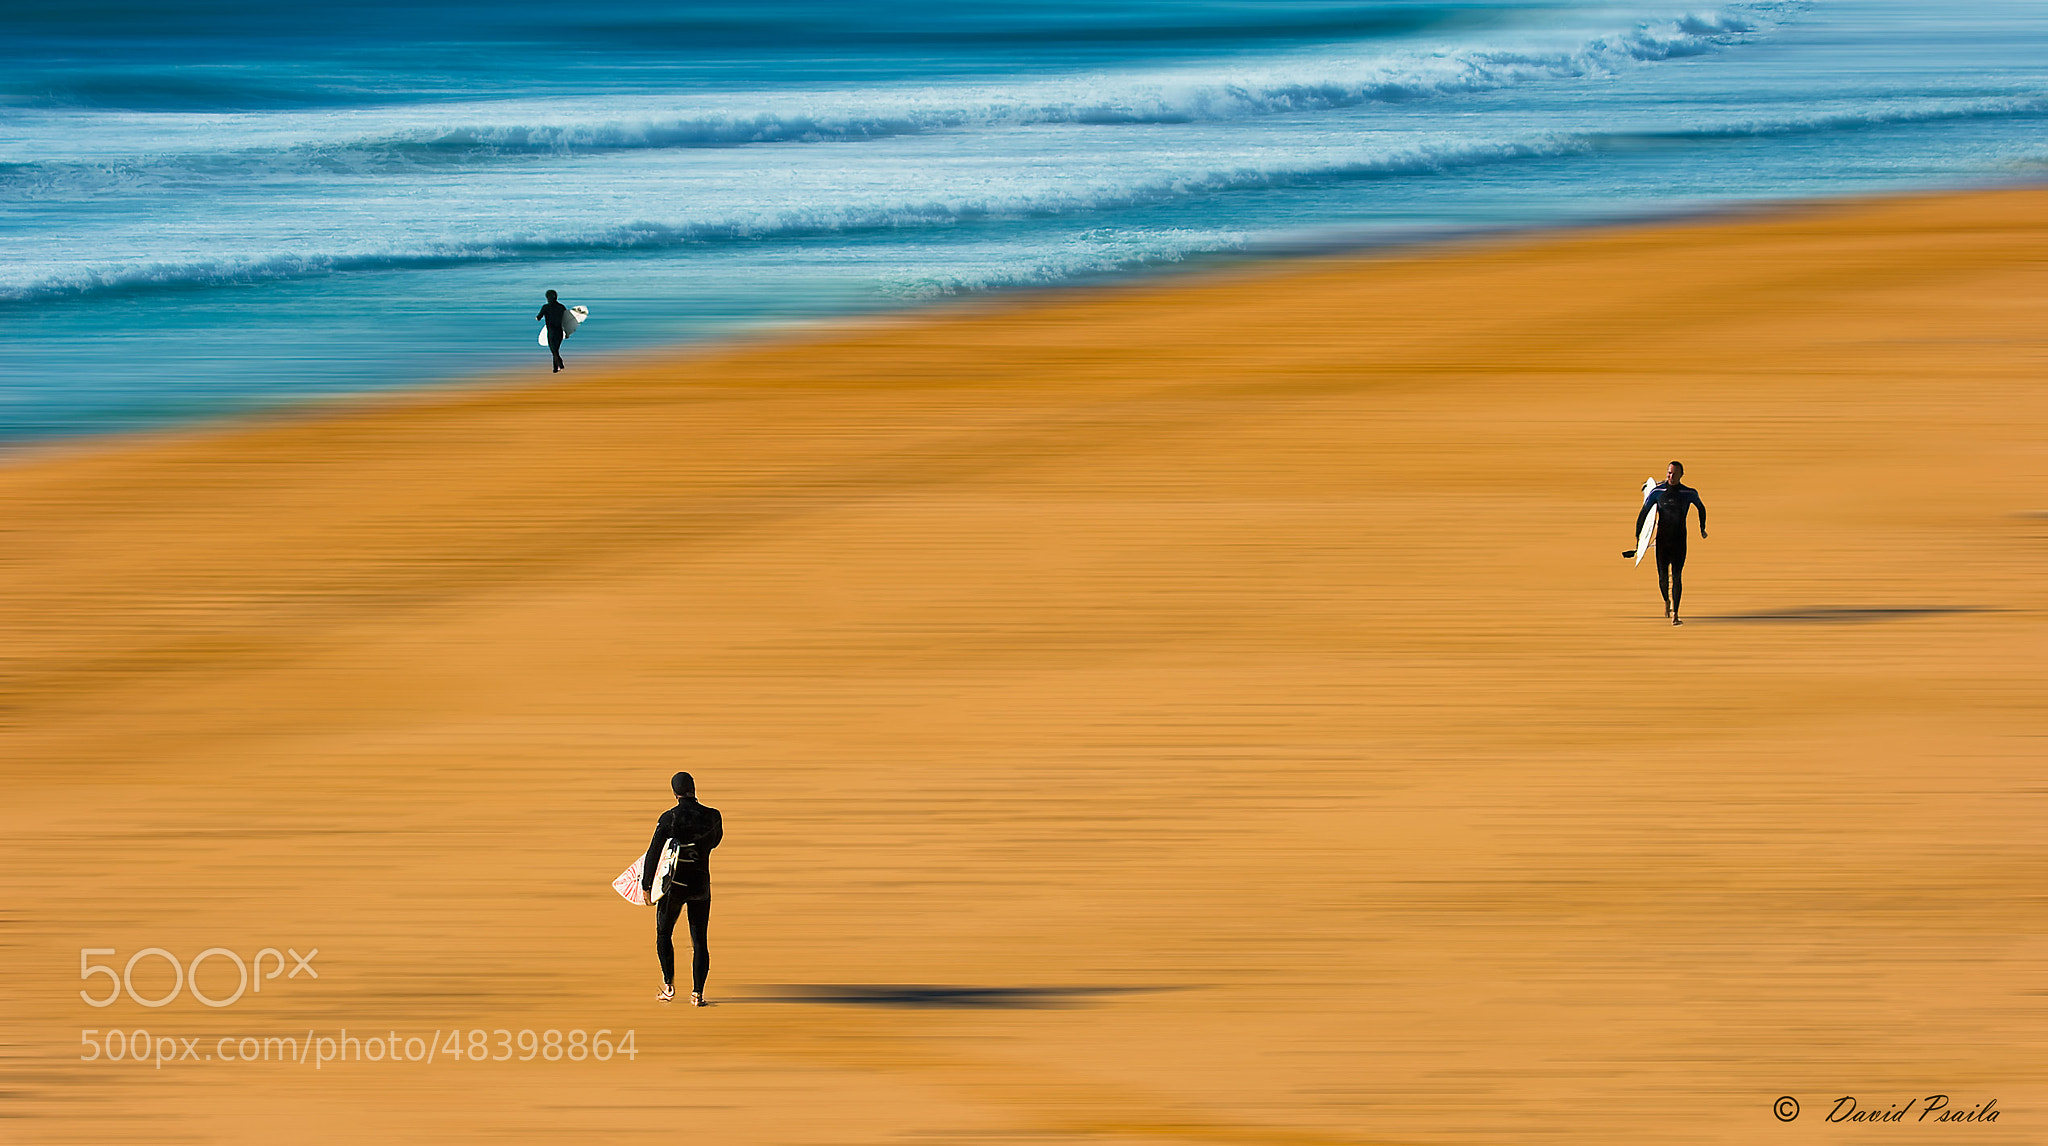 Photograph Morning Surf Maroubra Beach by David Psaila on 500px